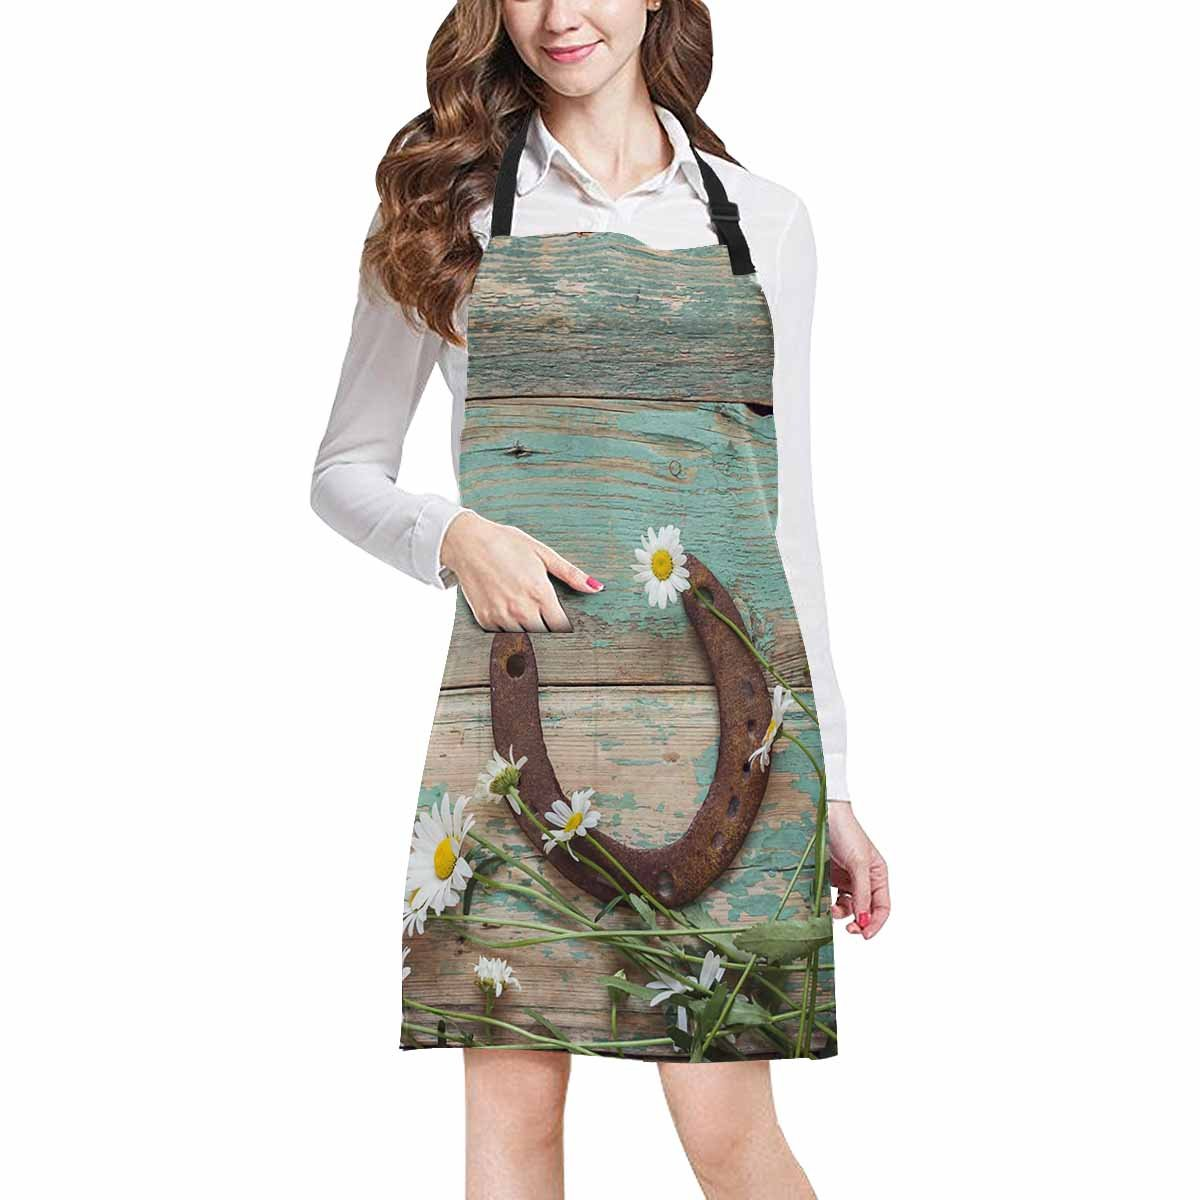 InterestPrint Rusty Horseshoe and Daisies on Rustic Old Barn Wood Chef Aprons Professional Kitchen Chef Bib Apron with Pockets Adjustable Neck Strap, Plus Size